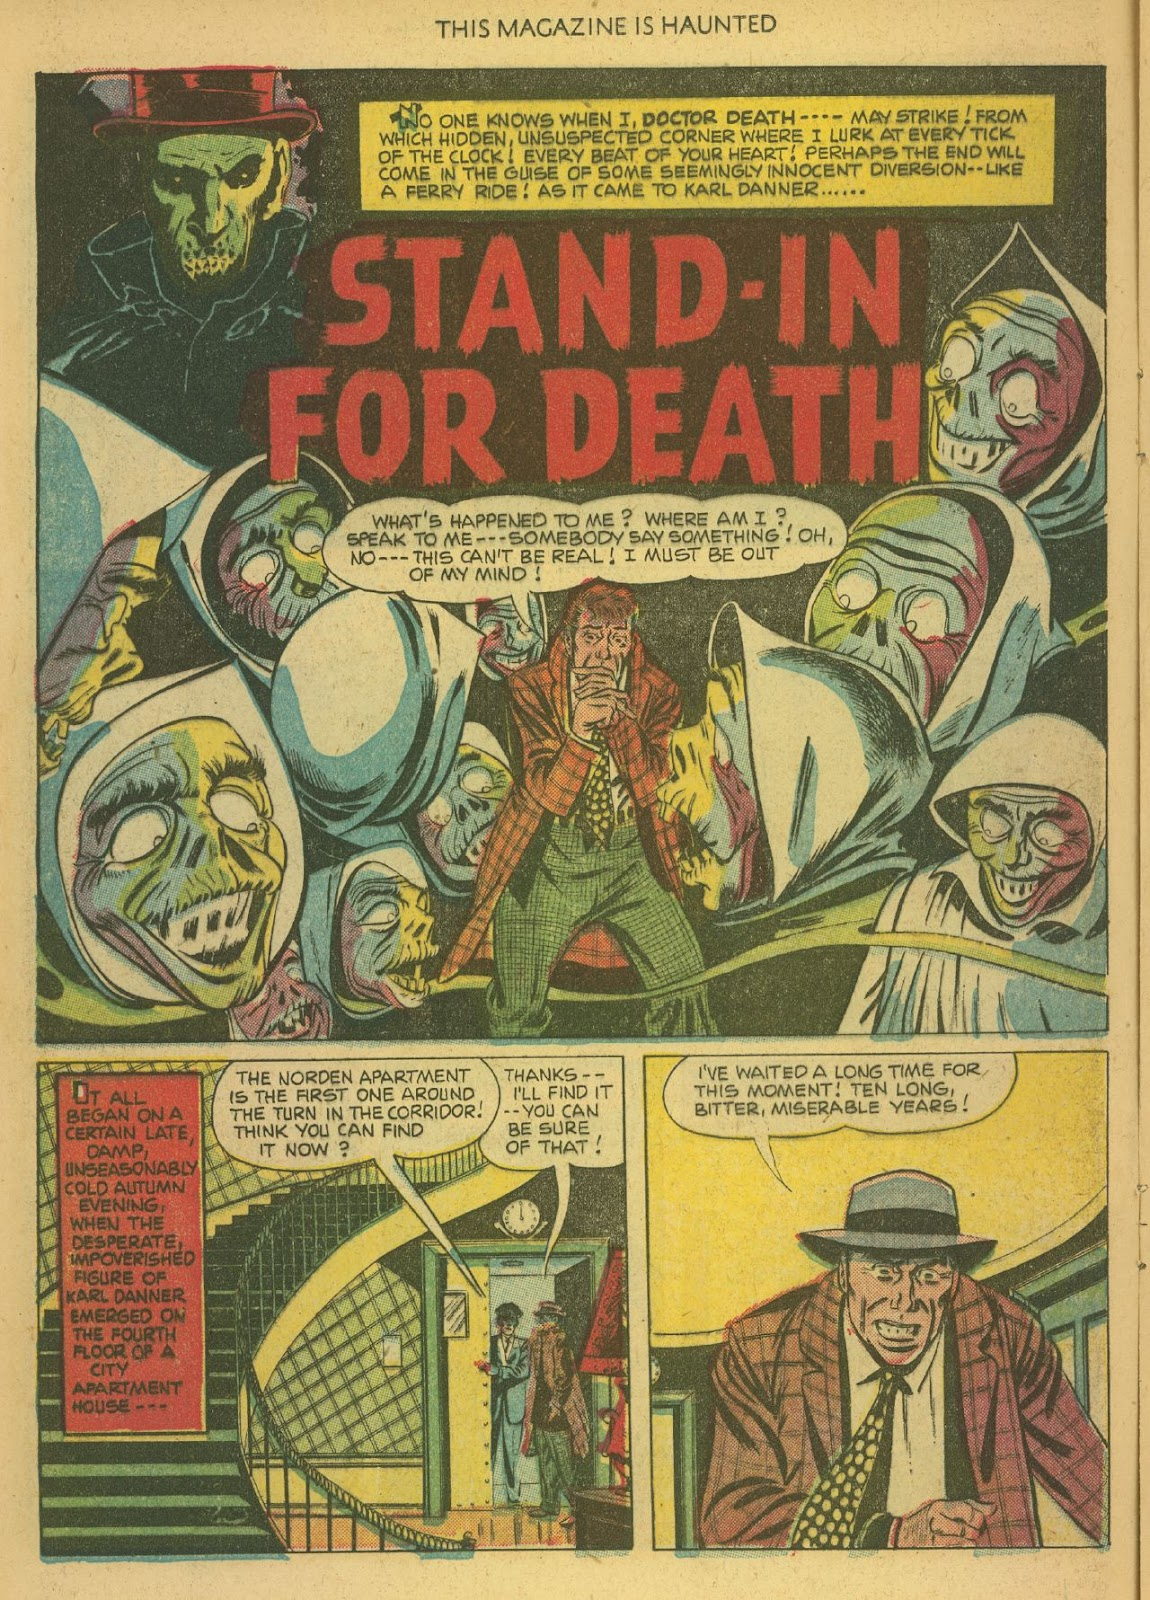 Read online This Magazine Is Haunted comic -  Issue #1 - 16